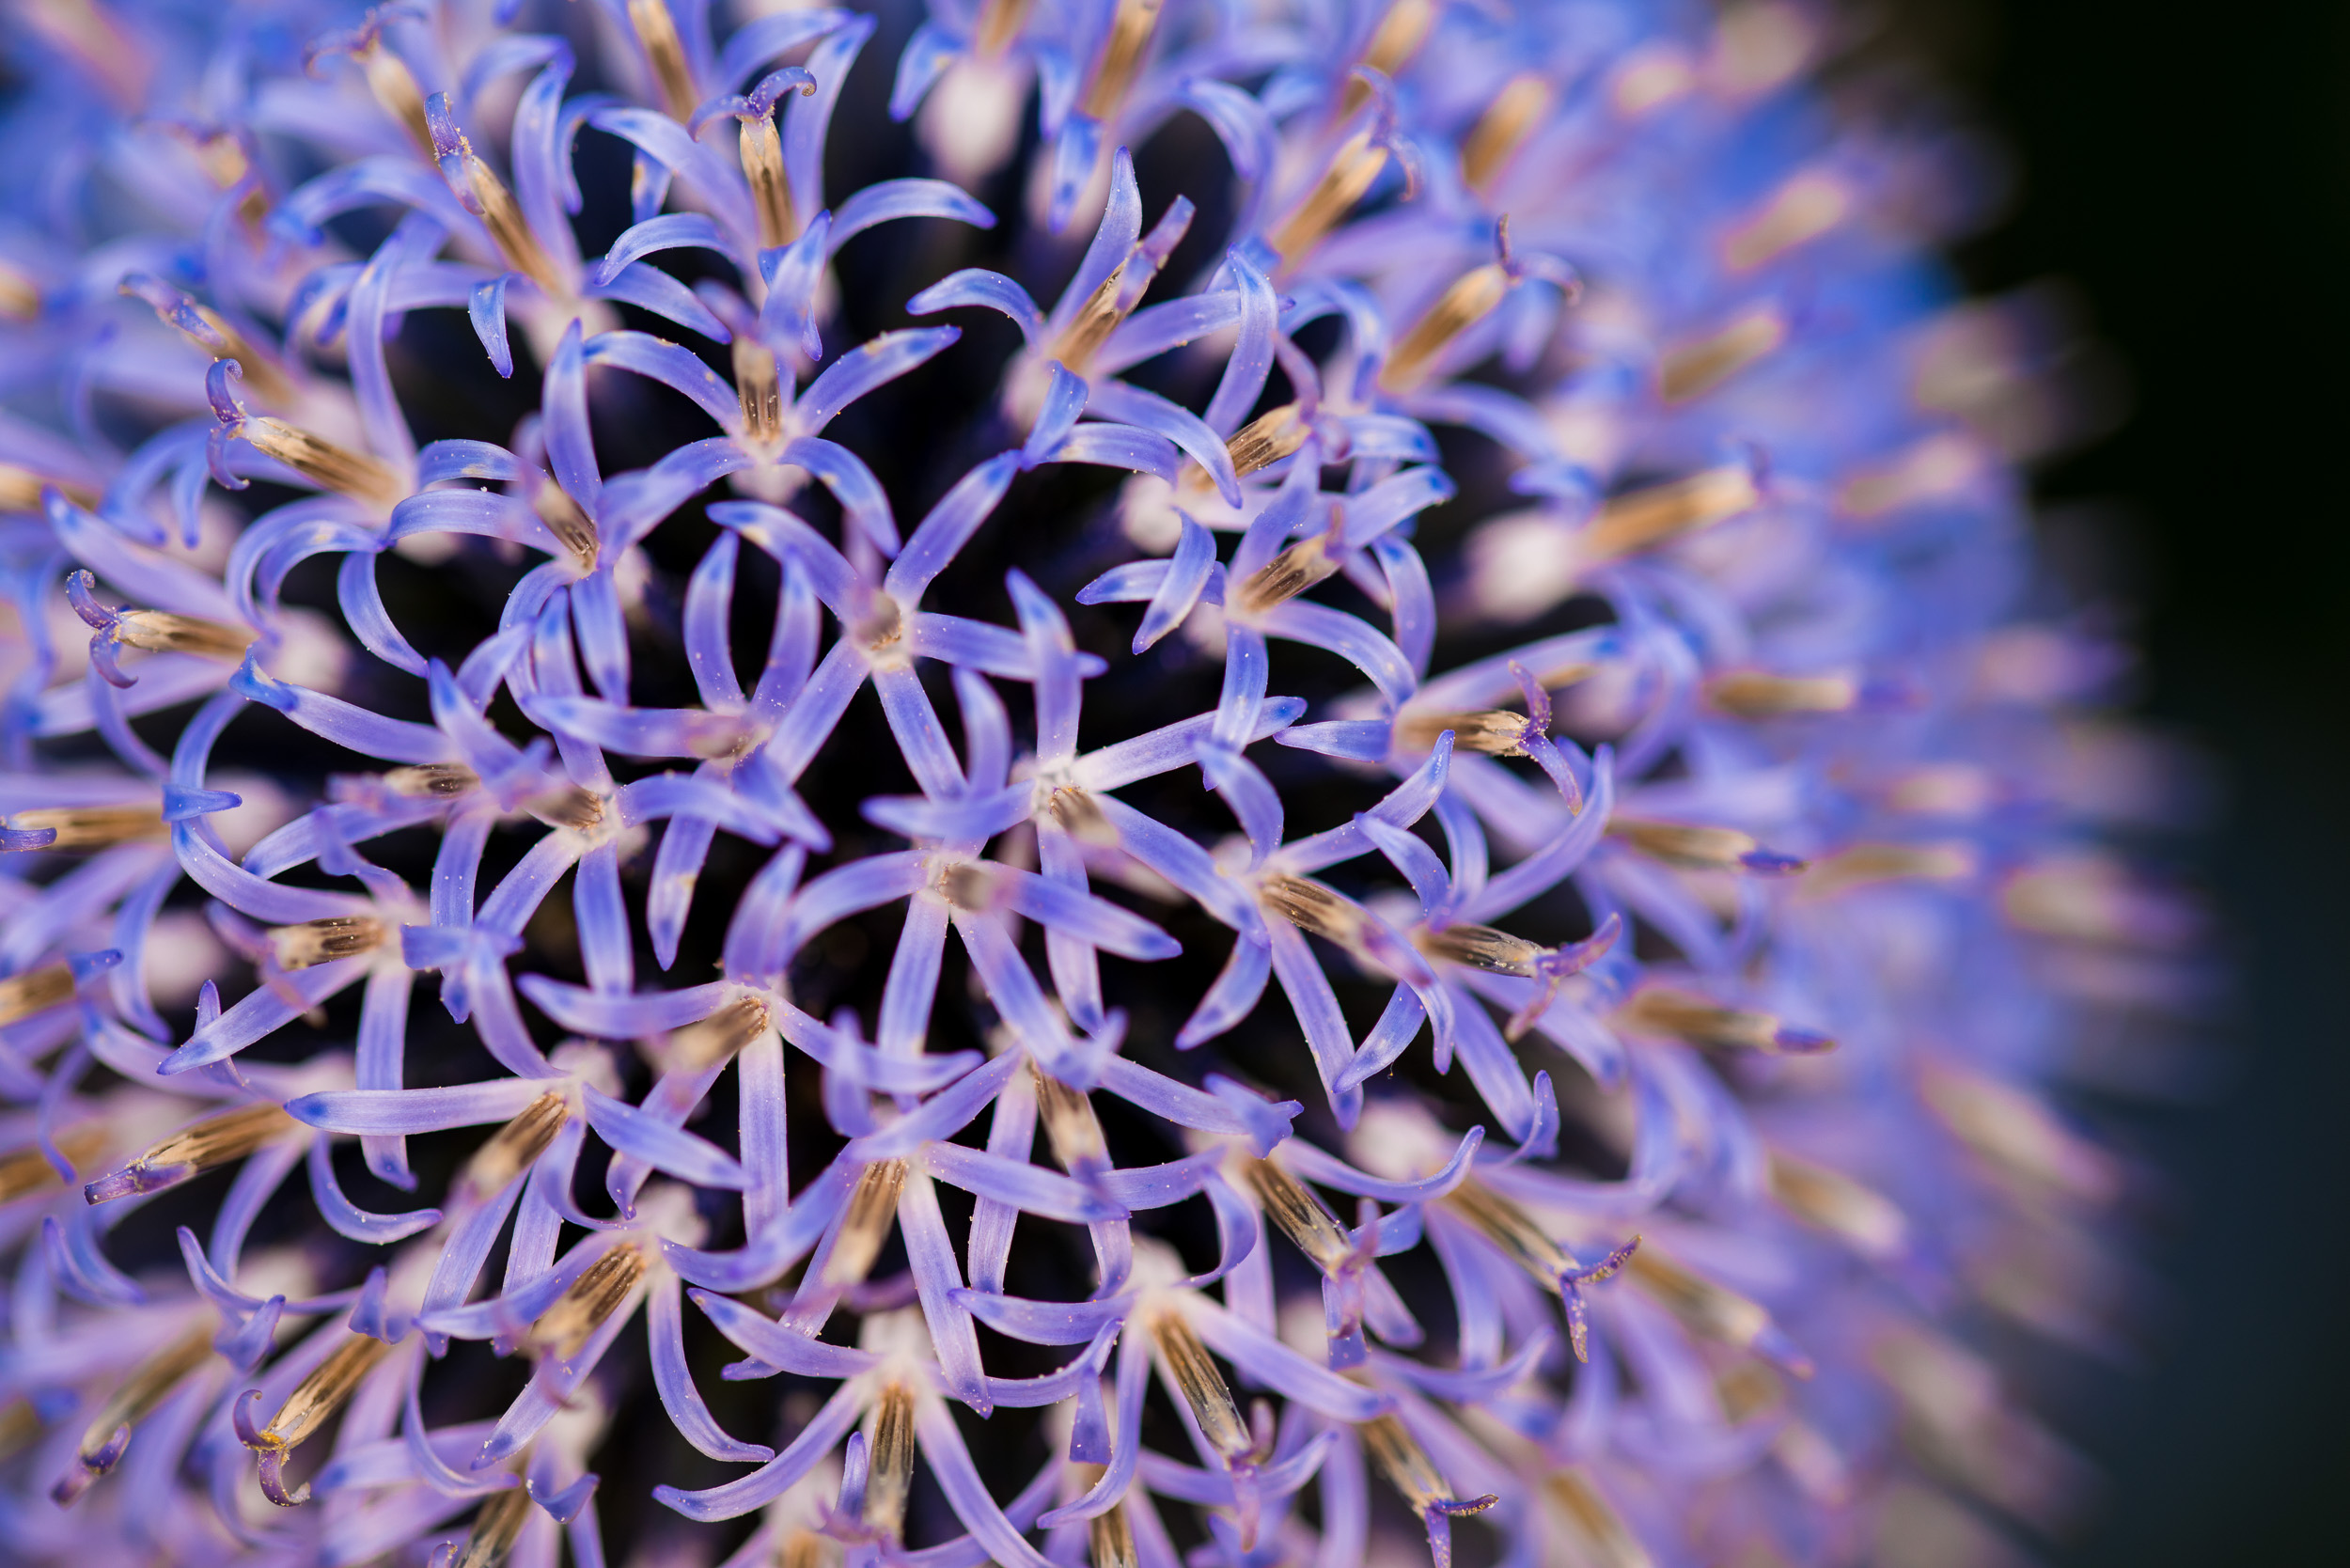 A photograph of a spherical flower